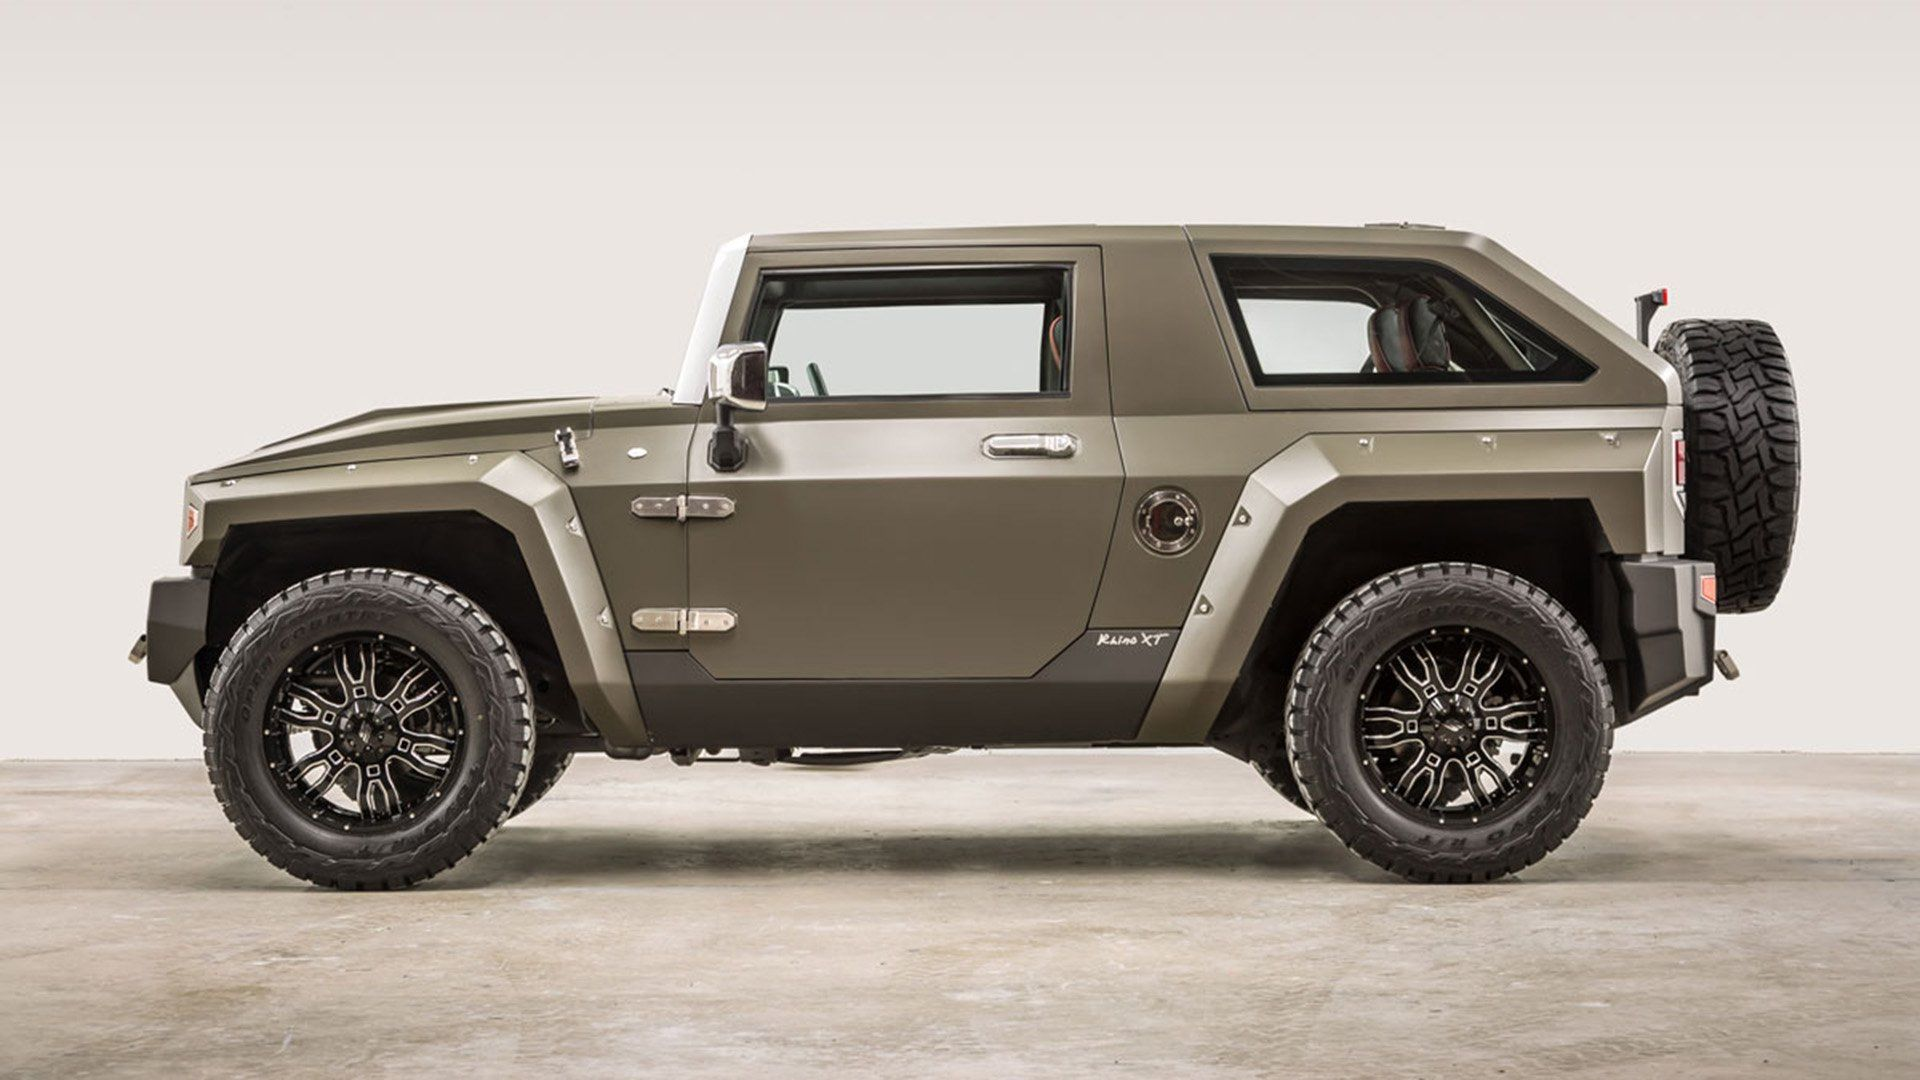 The Hellcat Rhino Xt Is A 707 Hp Wrangler On Steroids Luxury Suv